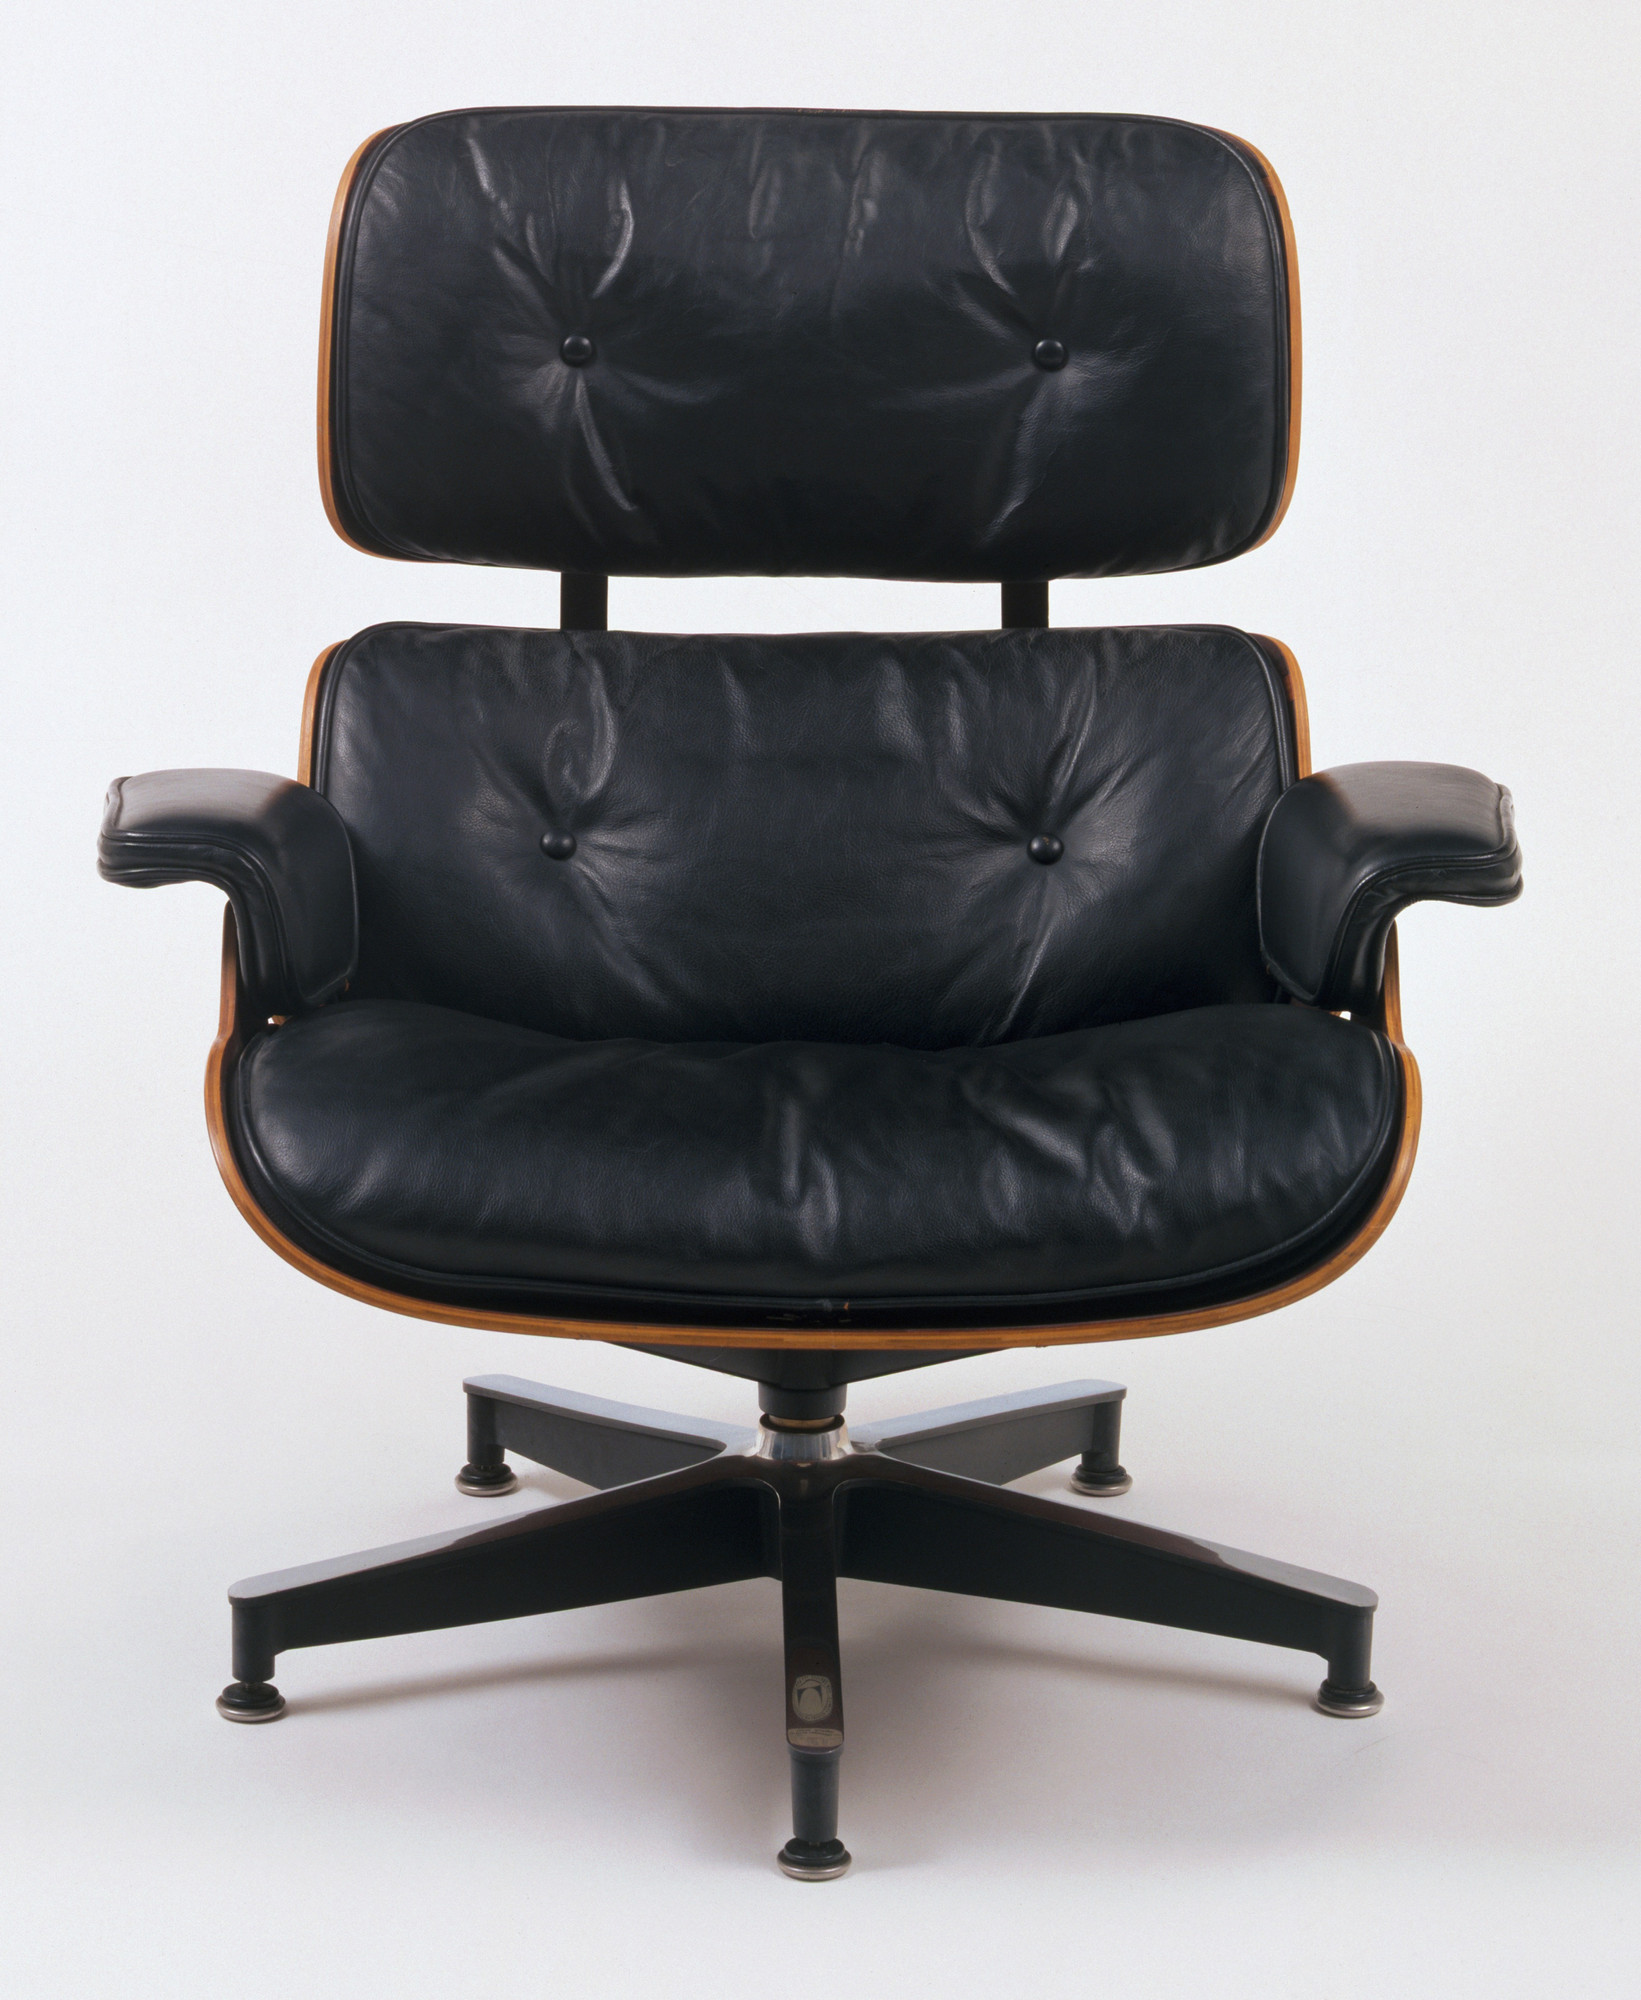 Brilliant Charles Eames Ray Eames Lounge Chair And Ottoman 1956 Moma Lamtechconsult Wood Chair Design Ideas Lamtechconsultcom